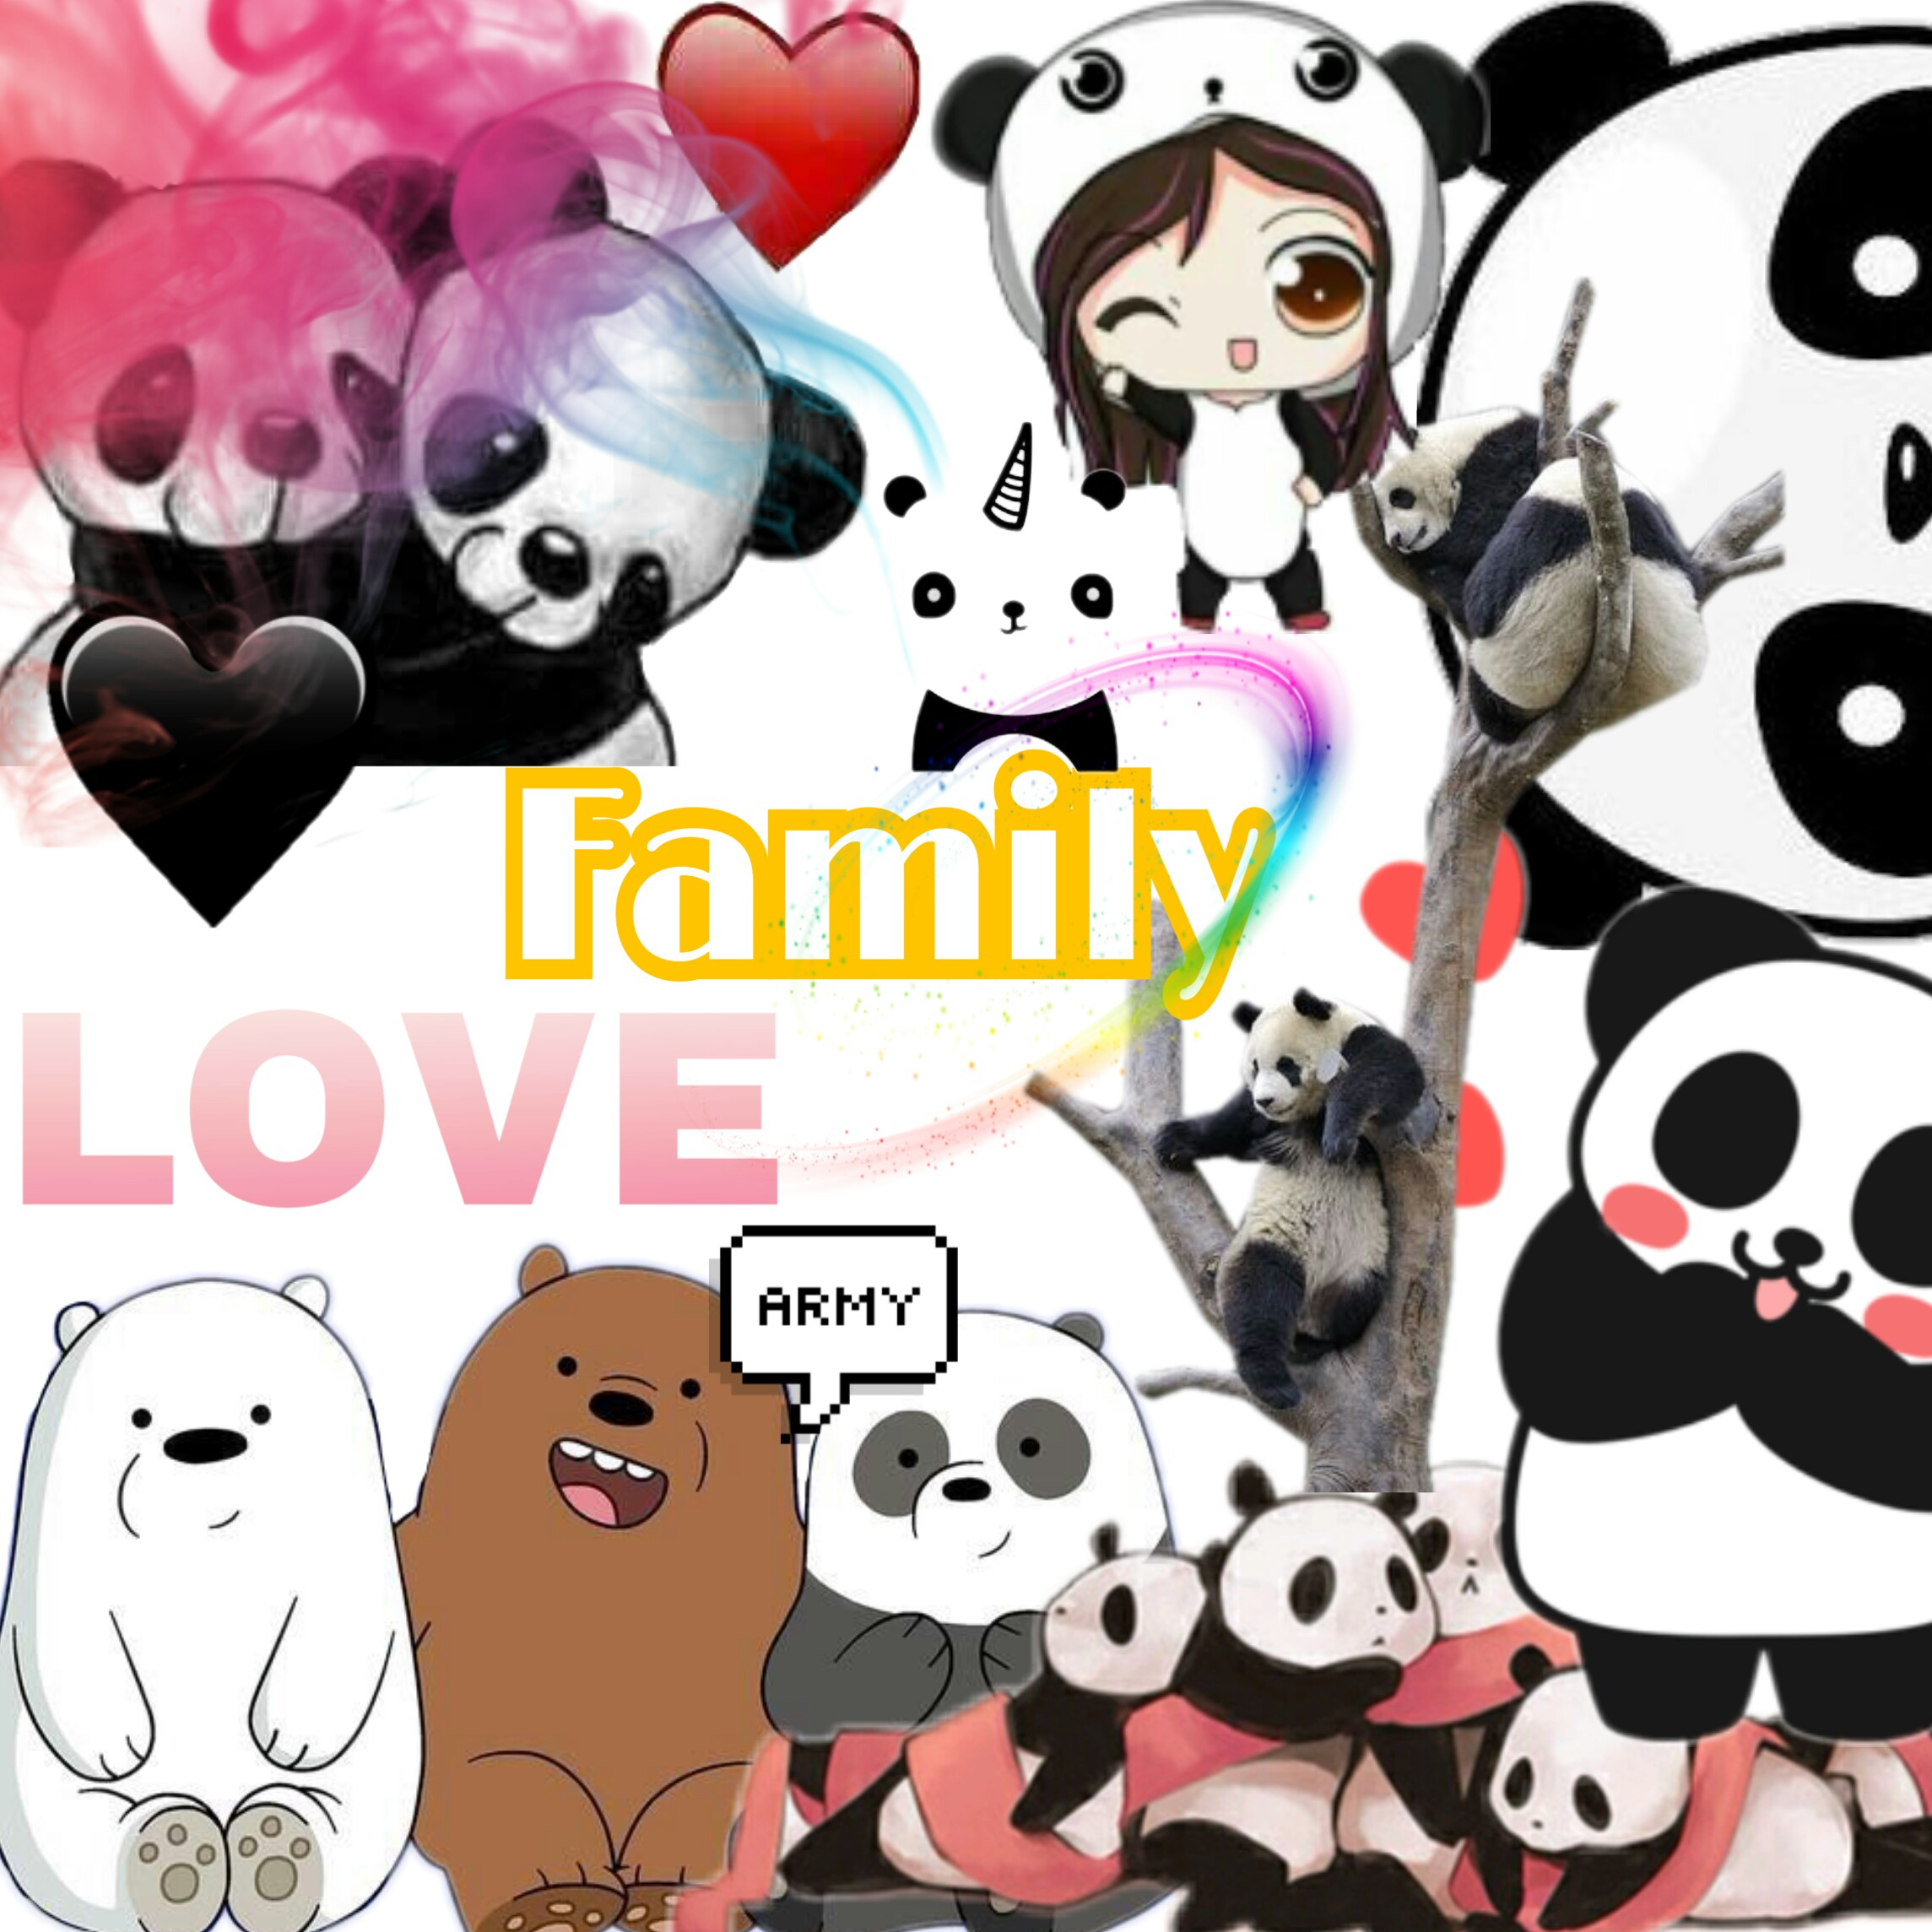 Cute Food Wallpaper Free 1000 Awesome Pandacorn Images On Picsart